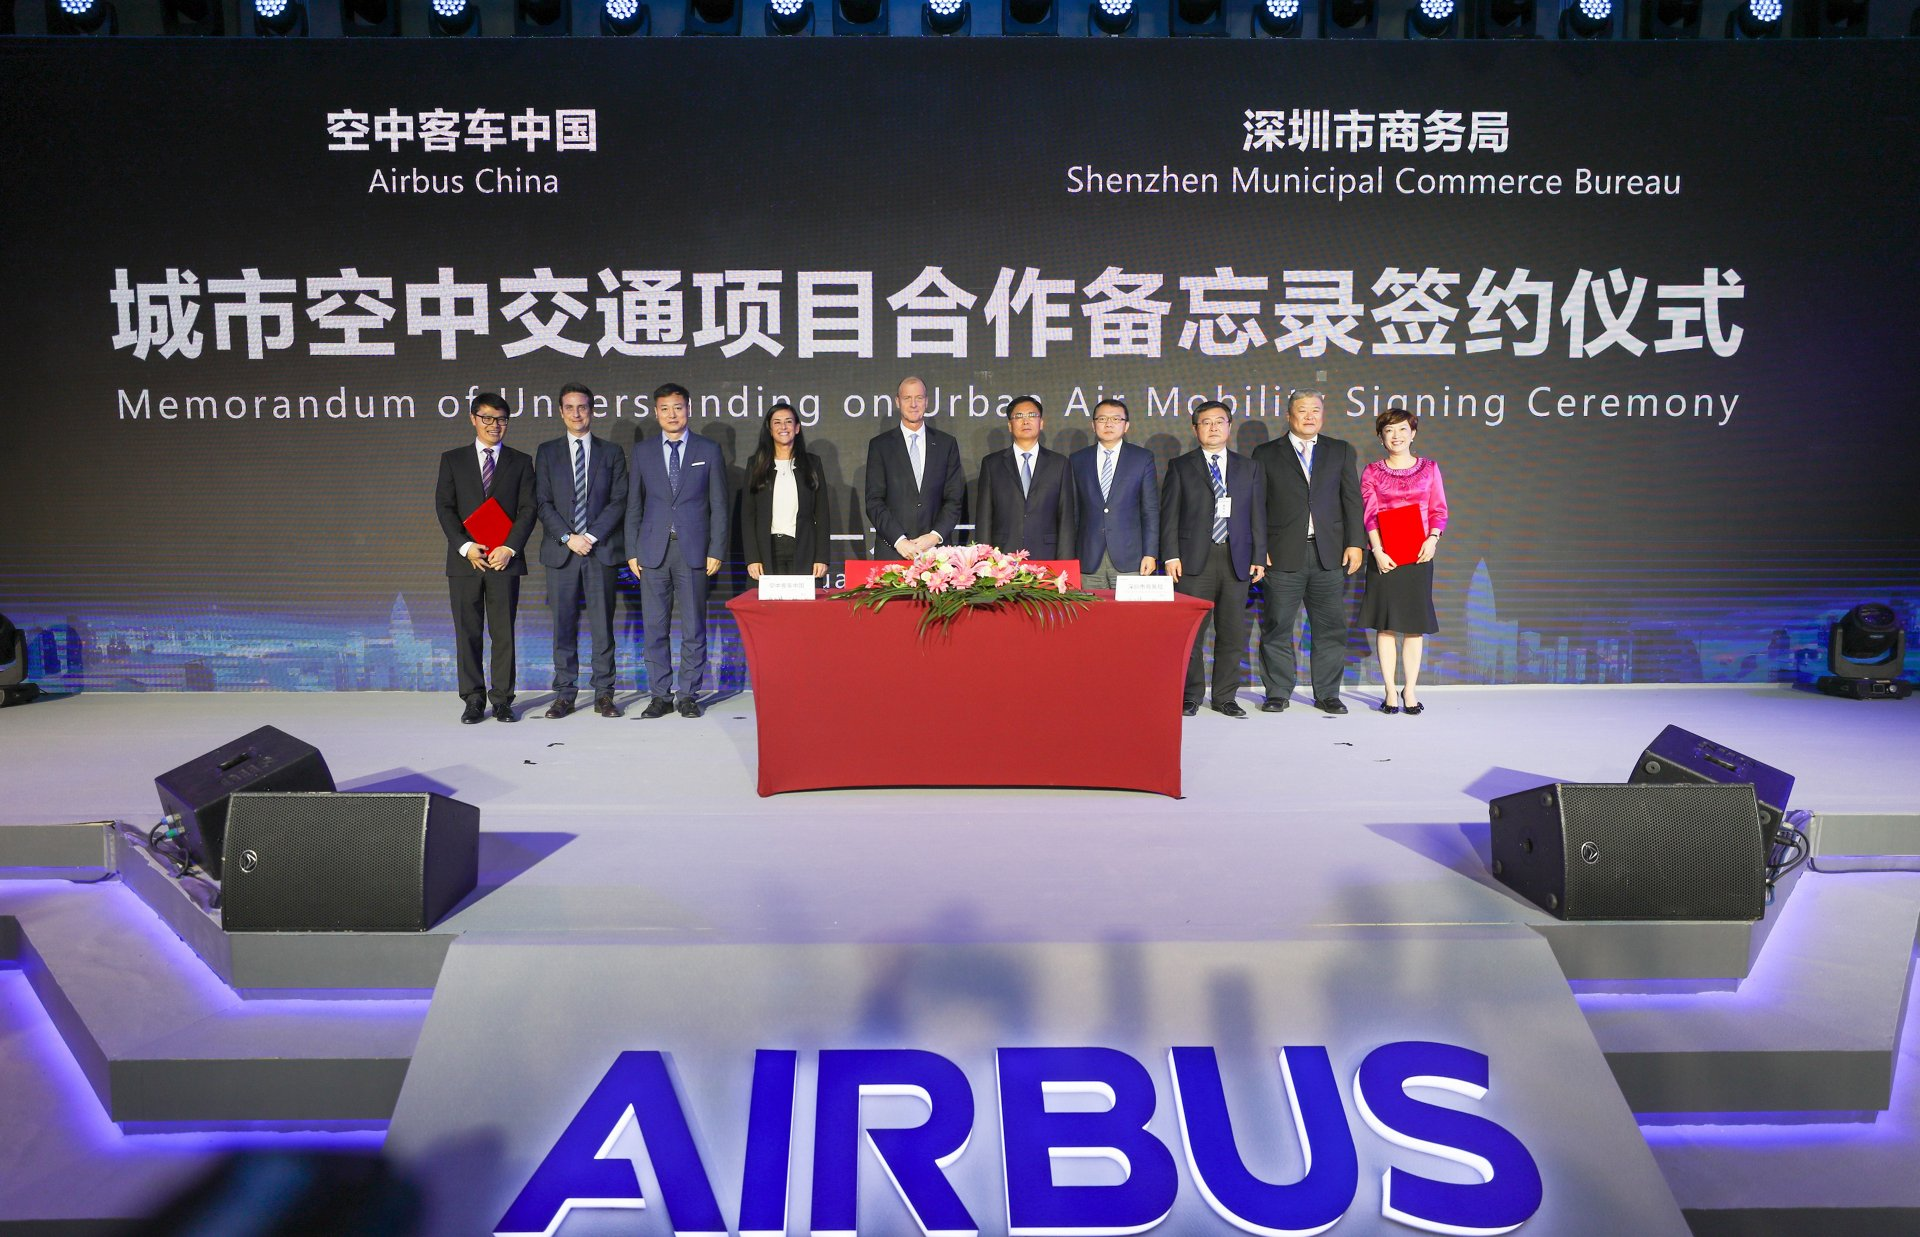 Airbus inaugurates its Innovation Centre in China